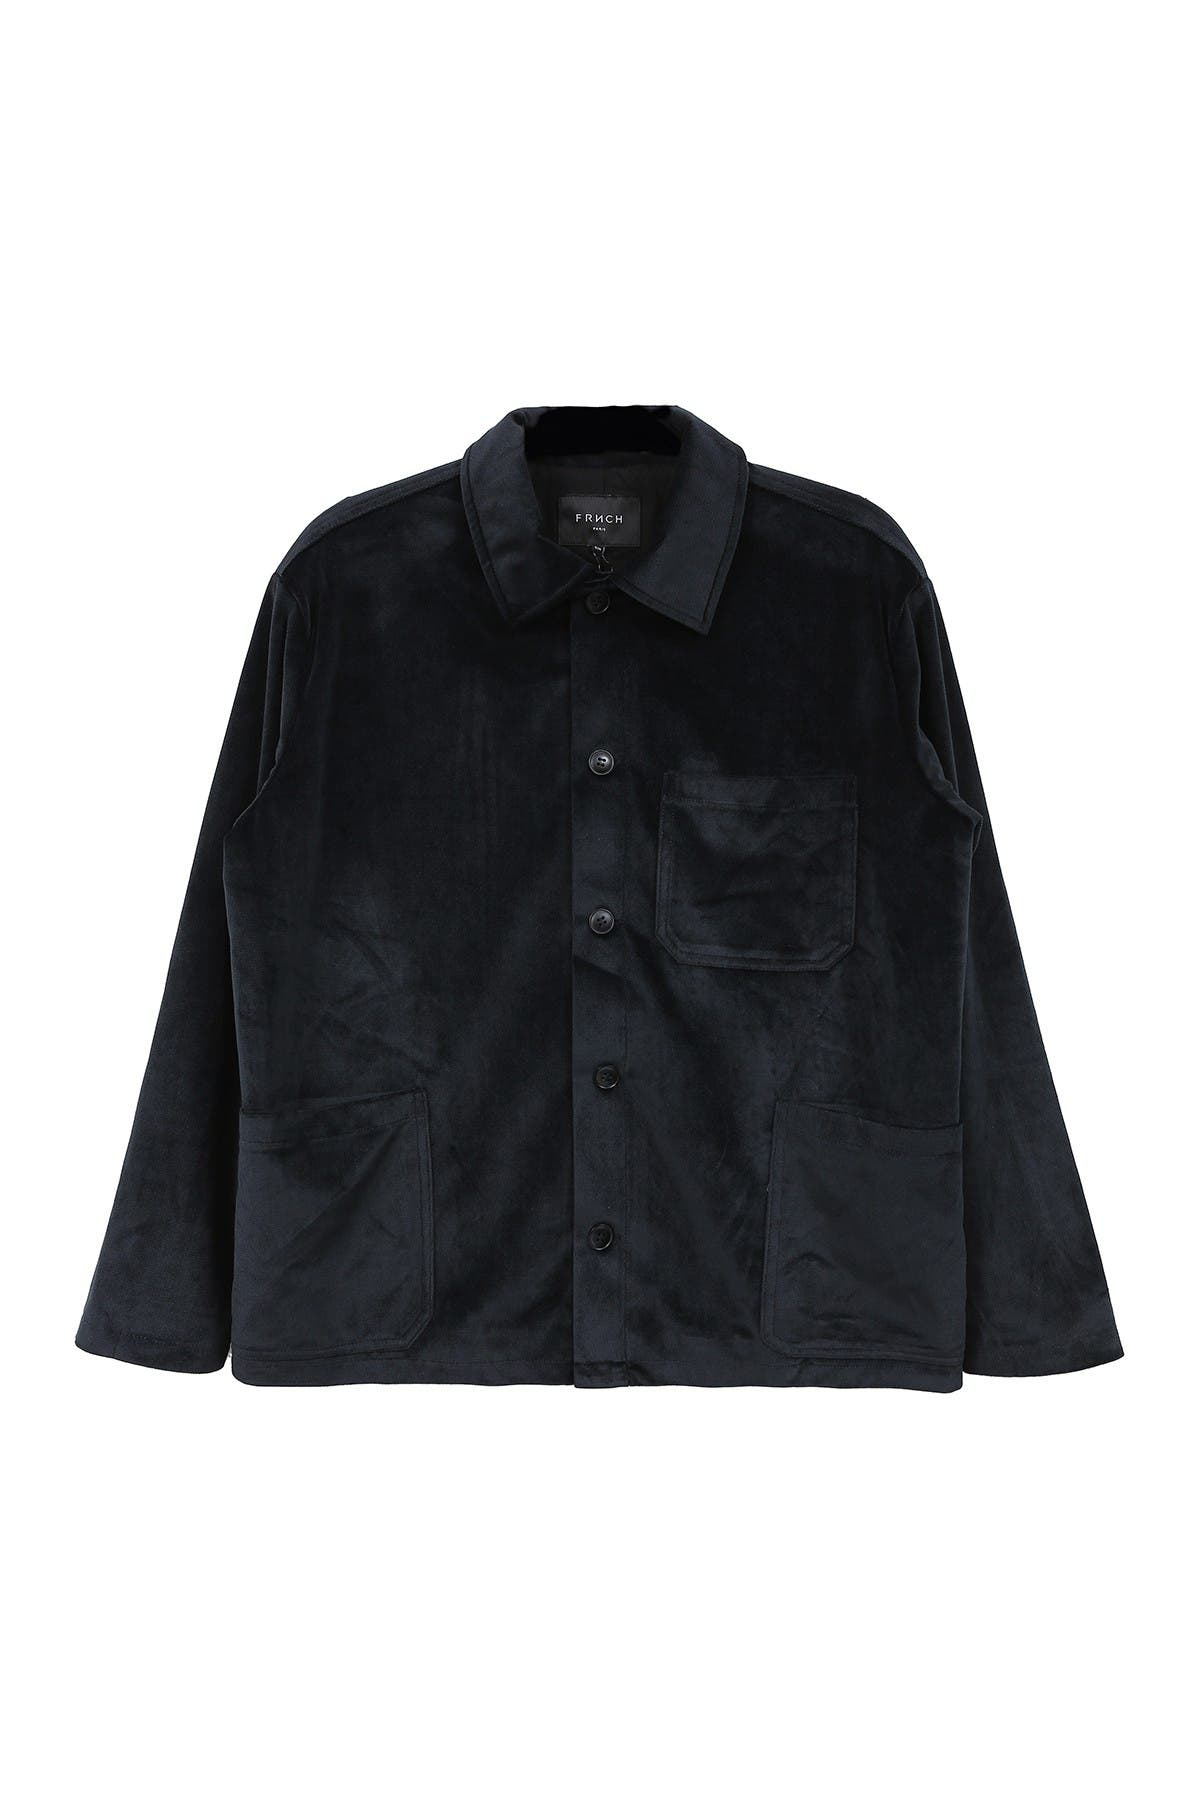 Image of FRNCH Long Sleeve Button-Front Jacket